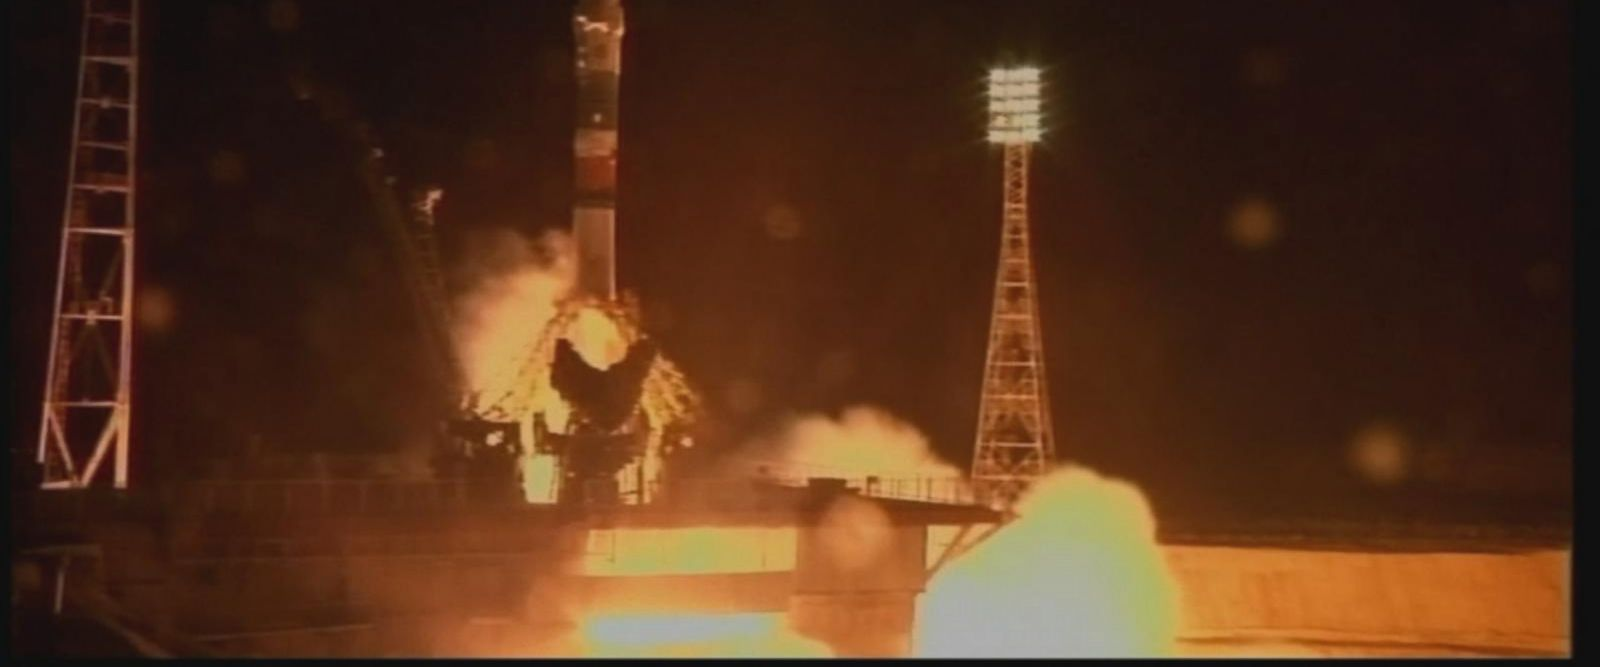 A rocket carrying two American astronauts and a Russian cosmonaut to the International Space Station has blasted off successfully.